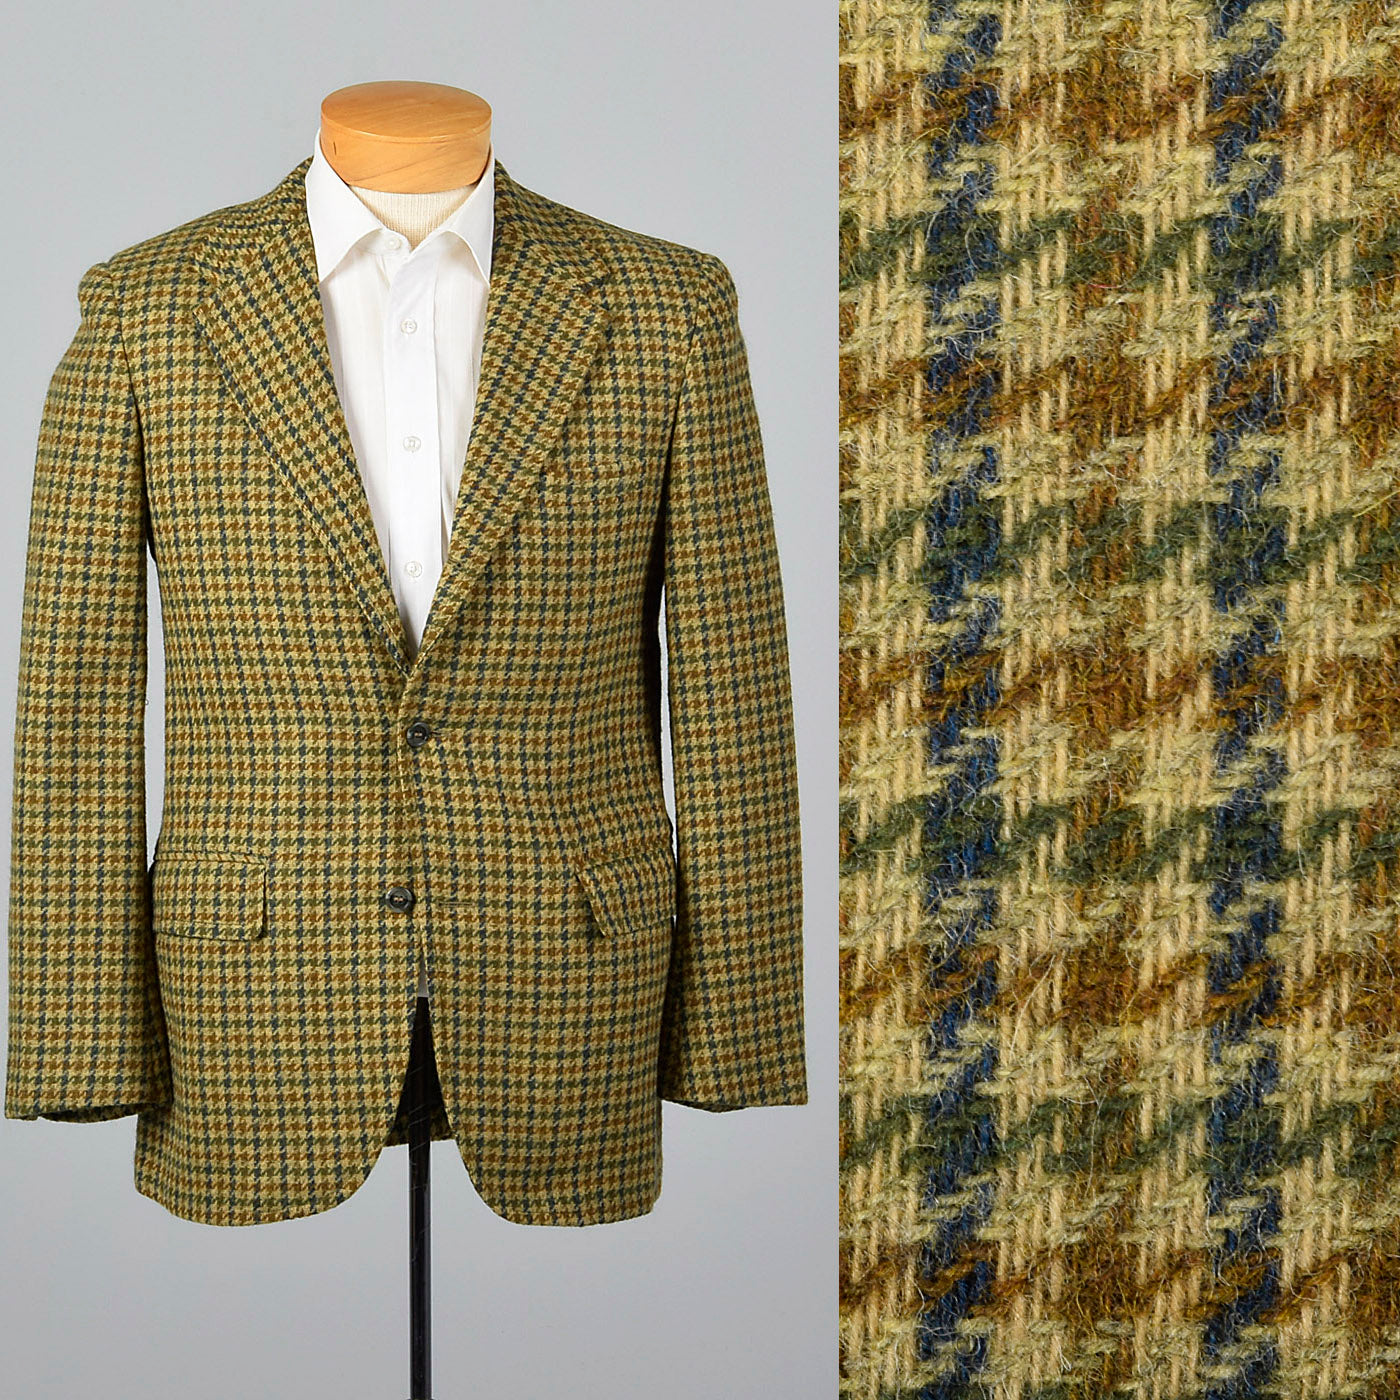 186558a47c8 1960s Mens Tweed Jacket in Gold Houndstooth – Style & Salvage